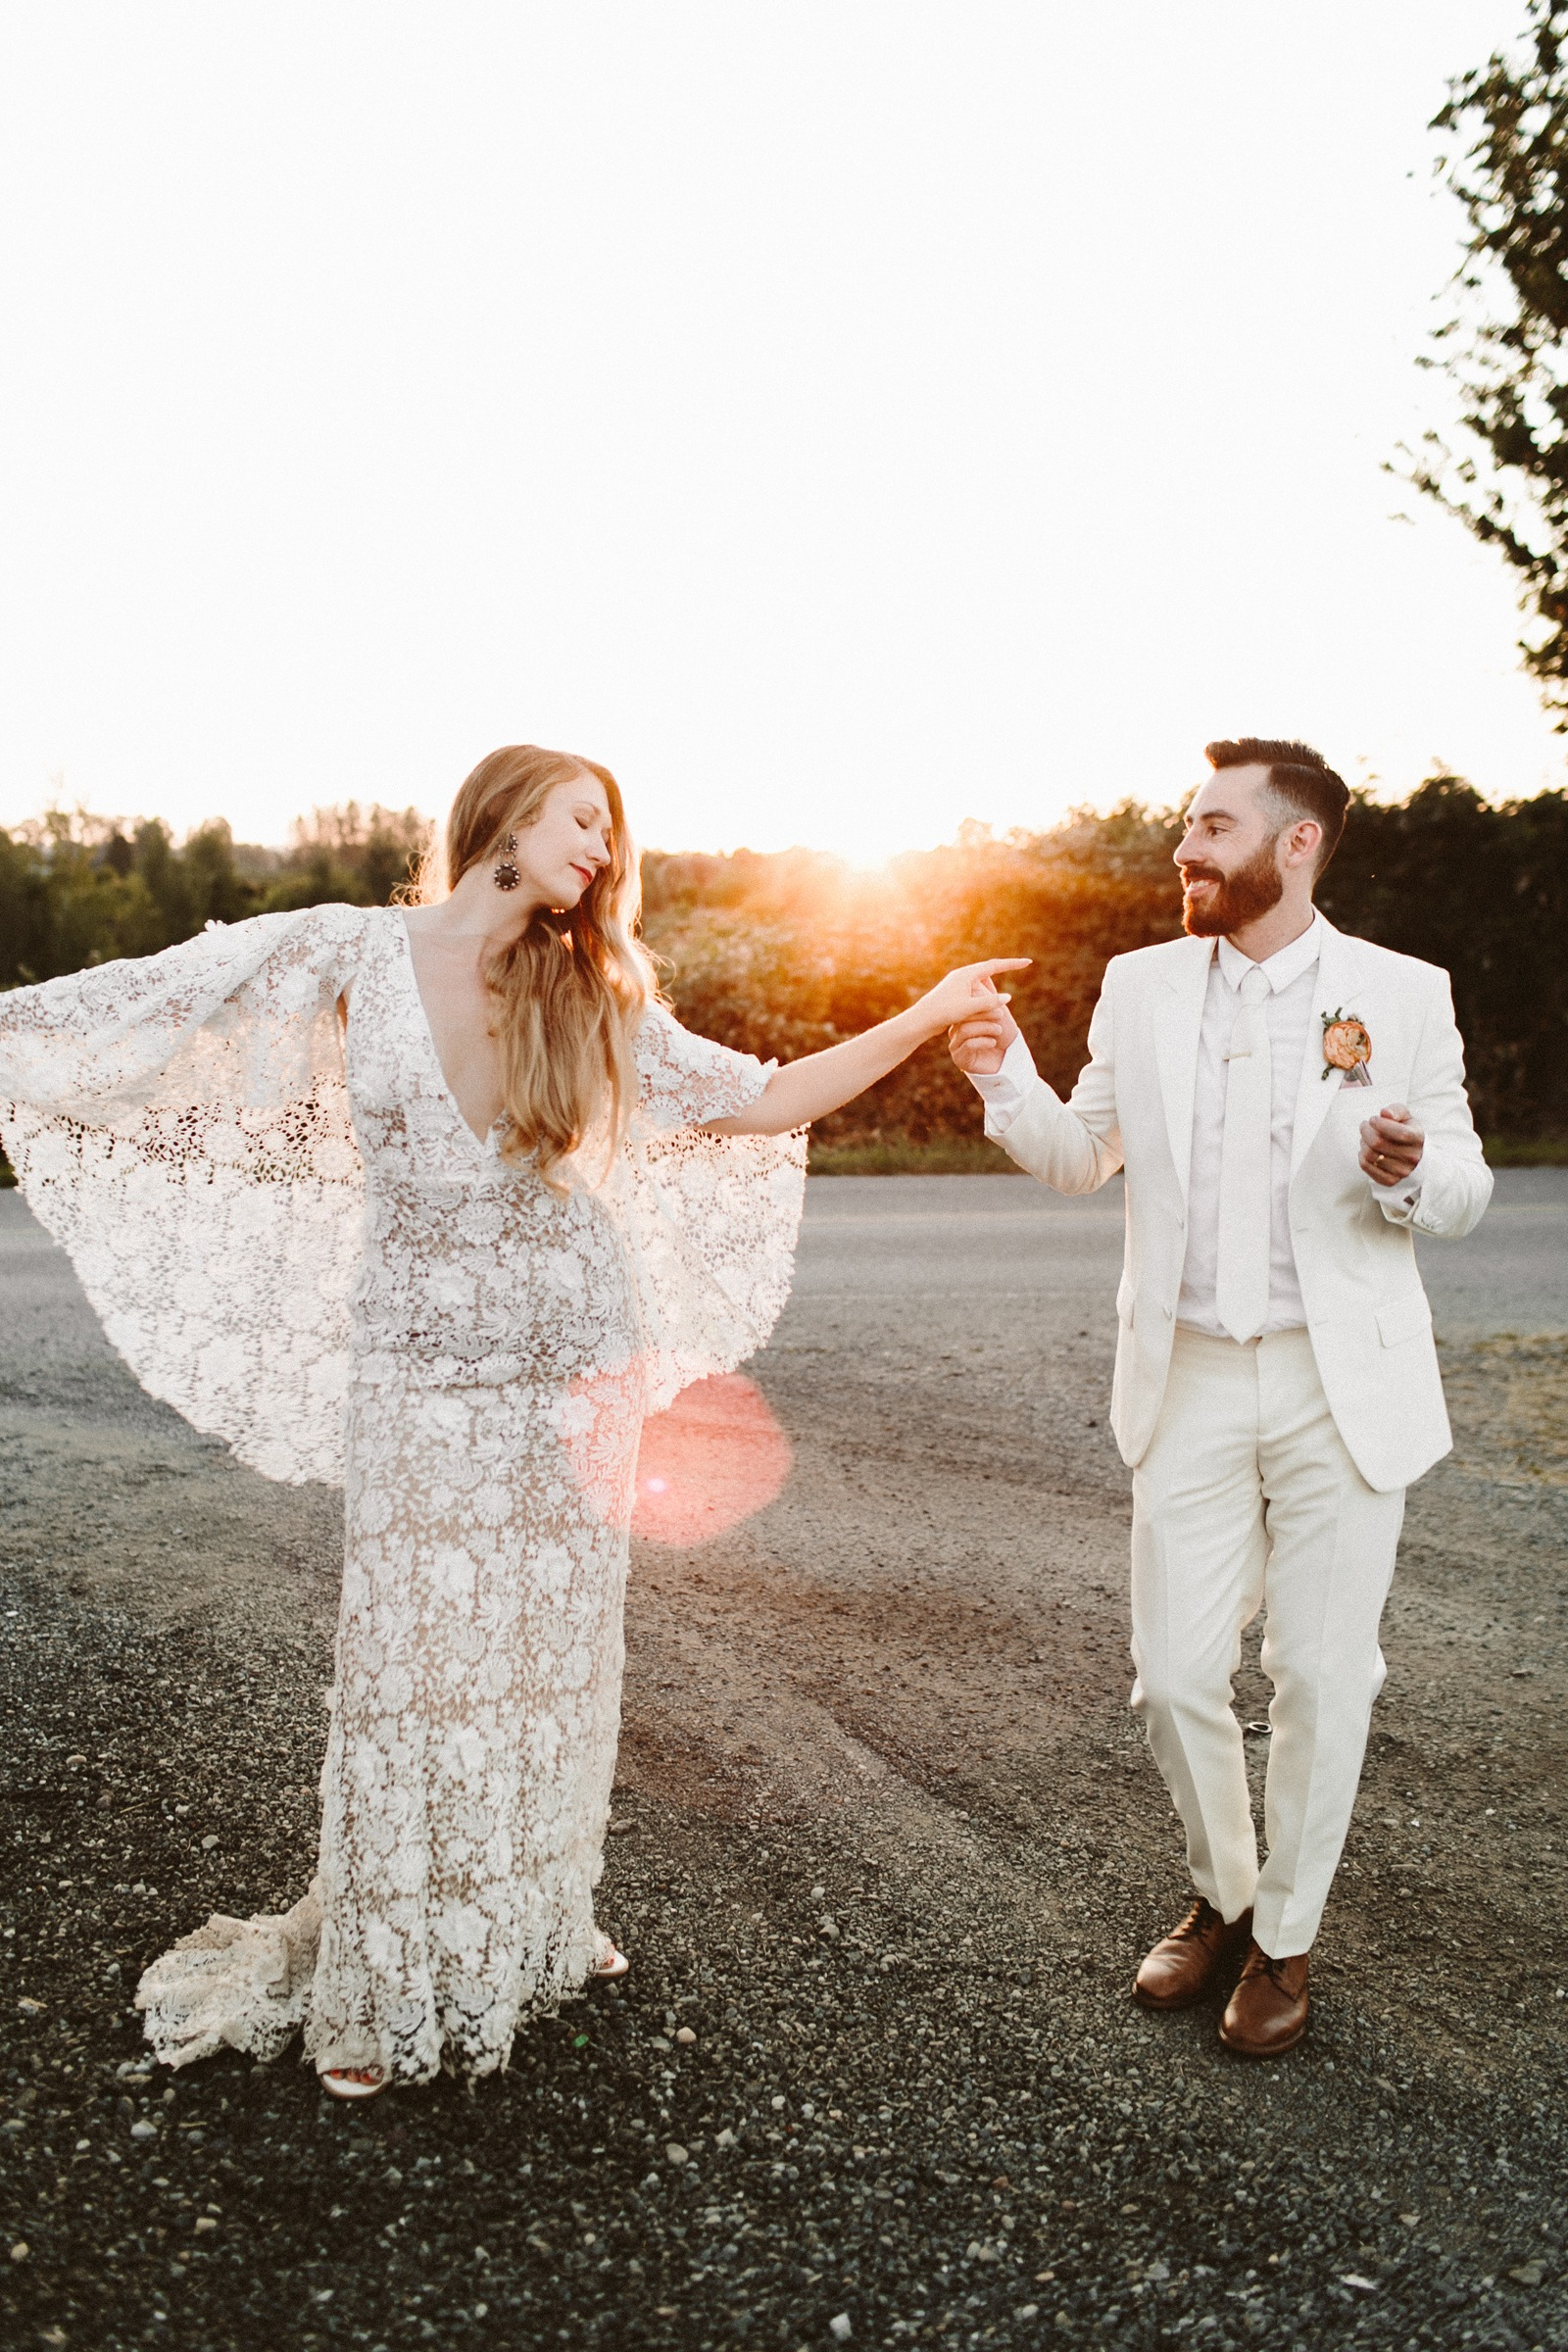 Dairyland wedding by Allison Harp